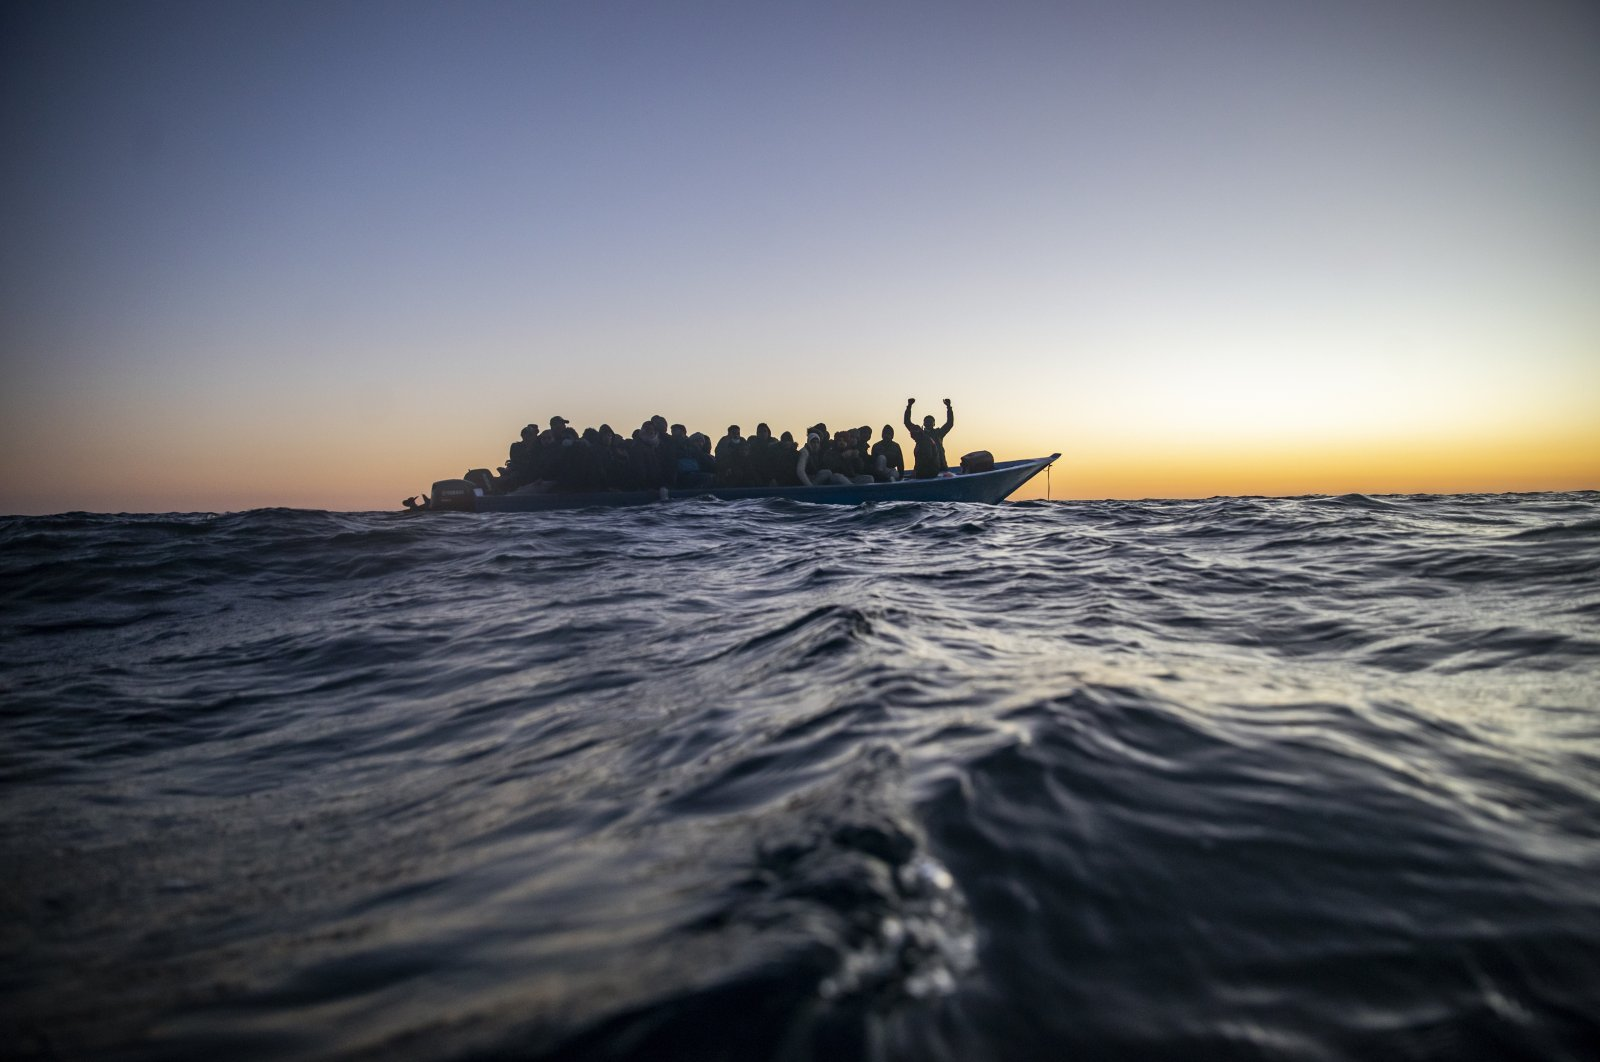 In this Feb. 12, 2021 file photo, migrants and refugees from various countries wait for assistance aboard an overcrowded wooden boat, as aid workers of the Spanish NGO Open Arms approach them in the Mediterranean Sea, international waters, at 122 miles off the Libyan coast. (AP Photo)